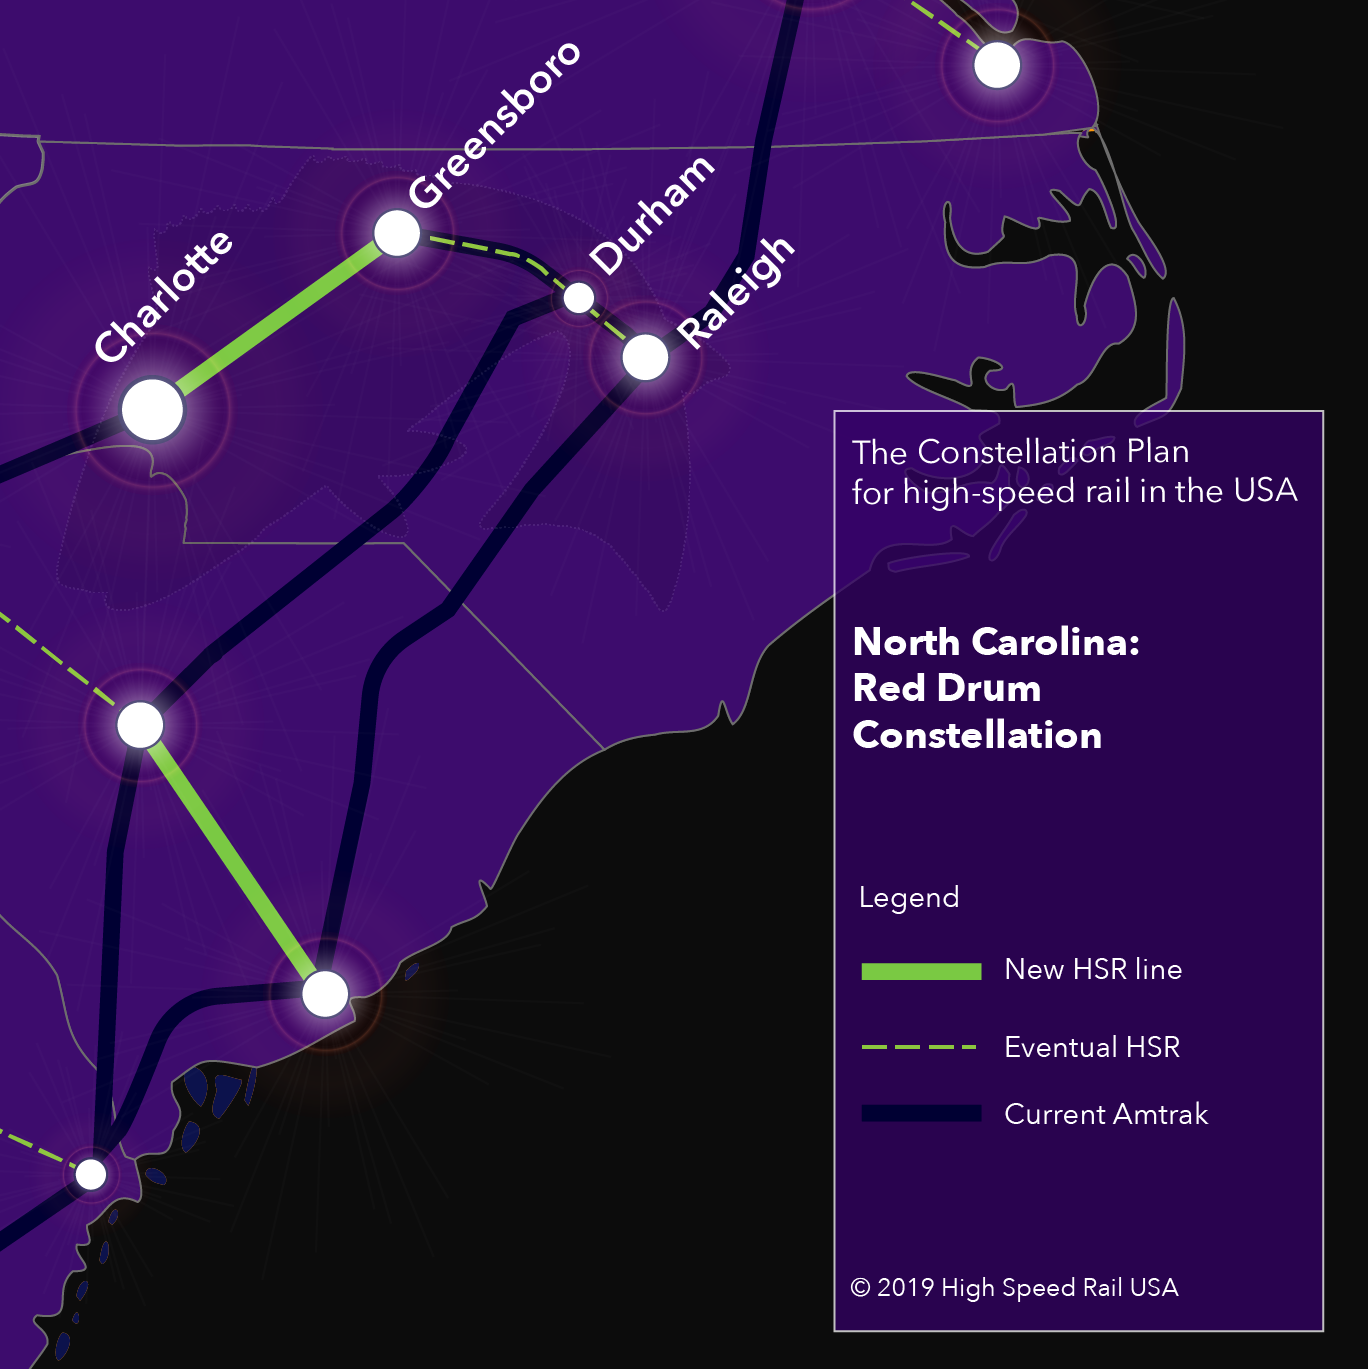 North Carolina - The Red Drum Constellation for high-speed rail